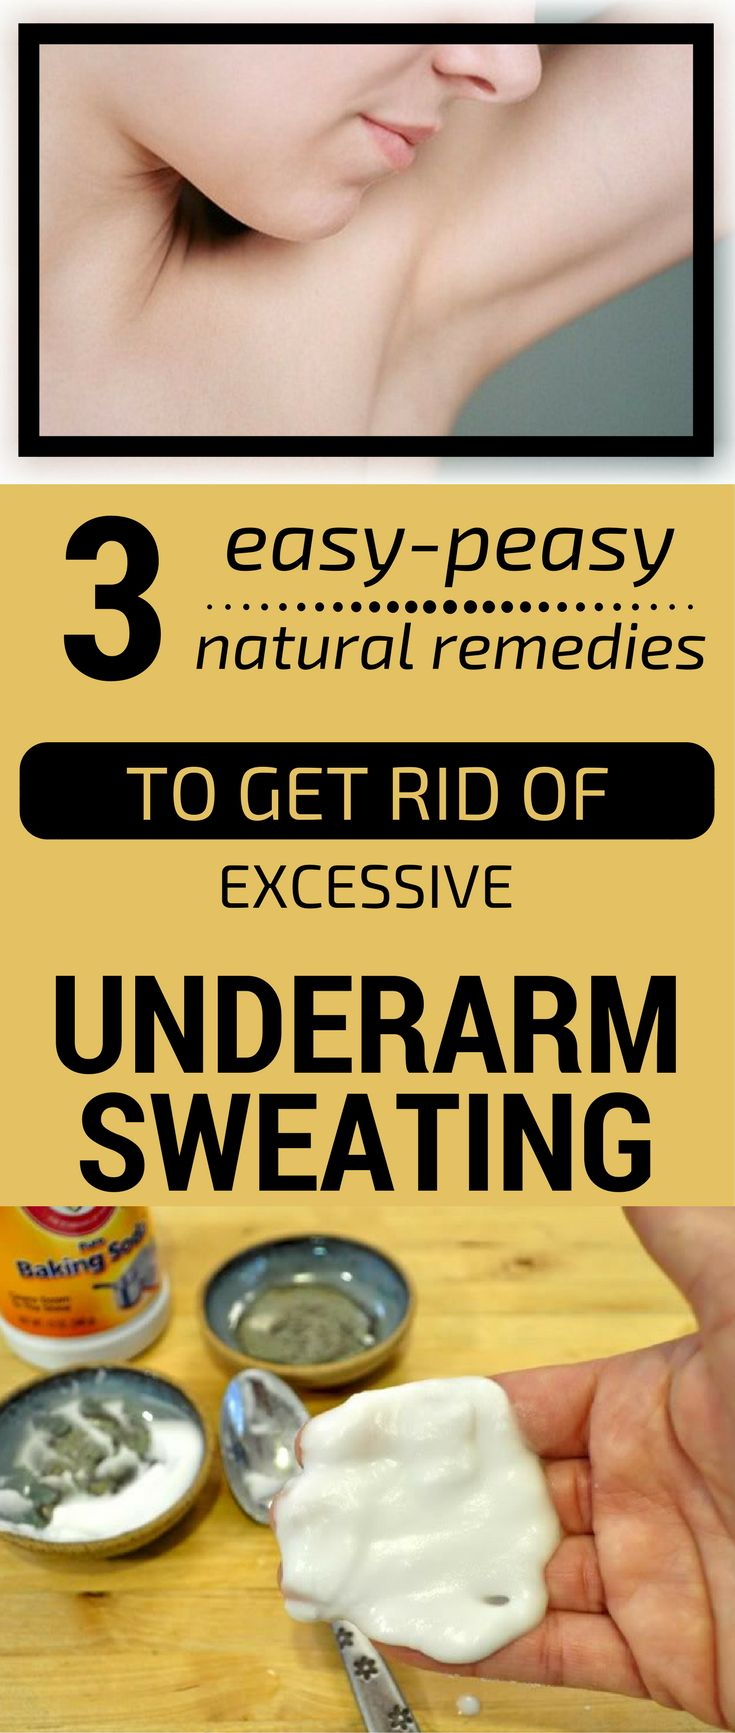 Sweat glands, excessively stimulated, produce excessive underarm sweating. Medical speaking, excessive sweating isn't a major health problem, but it can trigger discomfort, both physically and mentally. The great news is that you can get rid of this smelly problem with natural remedies. 1. Alum stone deodorant Alum stone is a salt crystal, odorless which doesn't ...